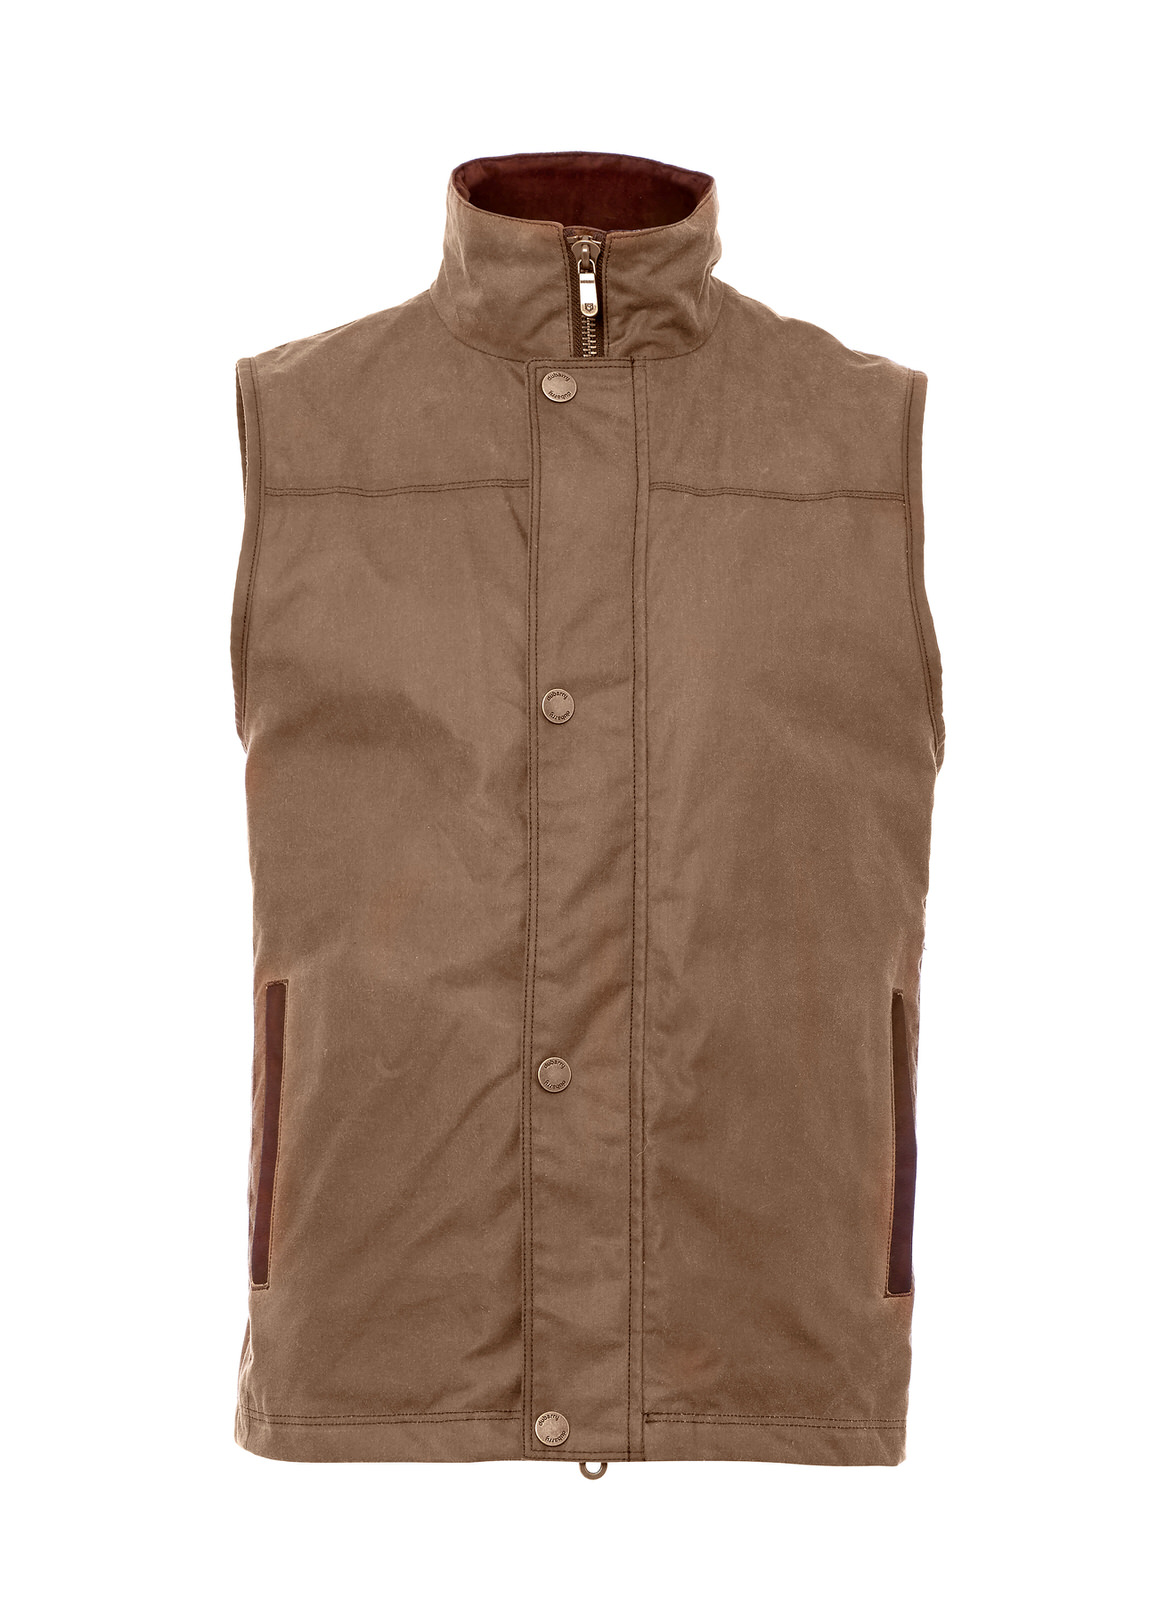 Mayfly_Wax_Gilet_Cigar_Image_1